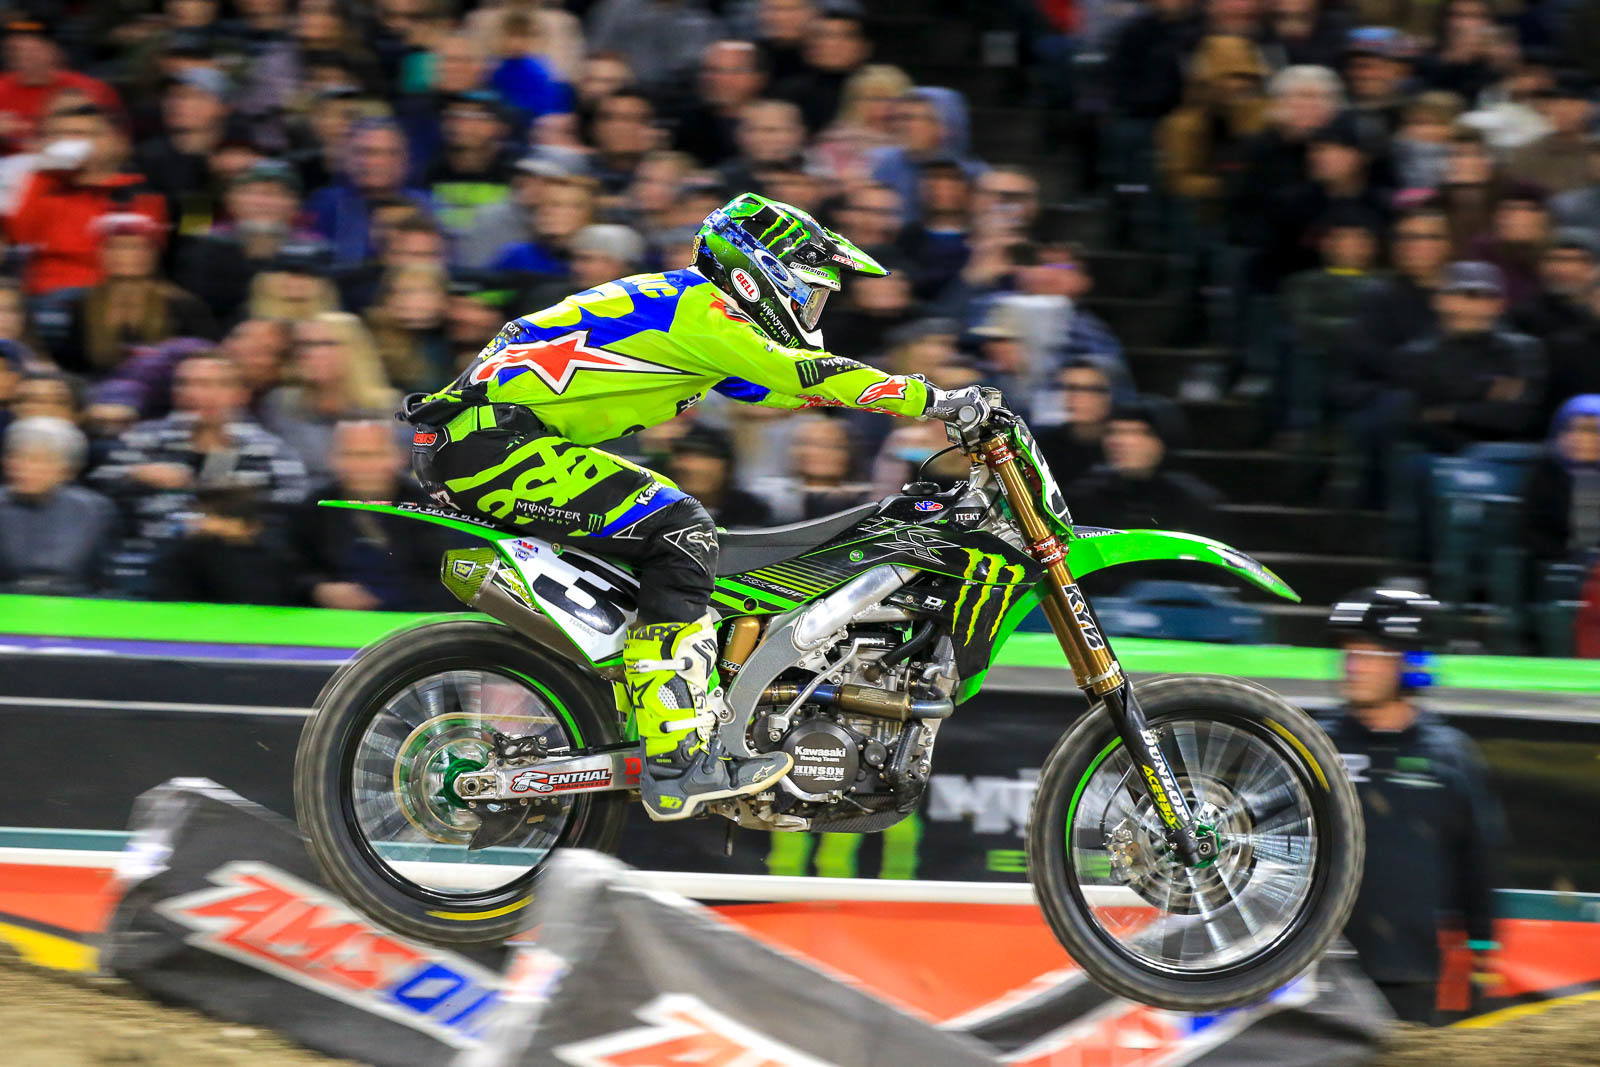 With his win at A2, Eli Tomac bounced back in a big way from crashing out at A1, and having to sit out Houston (despite riding practice there). Does he still have a shot at this year's title? As we've already seen, just about anything can happen. But at this point he only has about a third of the points that Jason Anderson already has squirreled away.